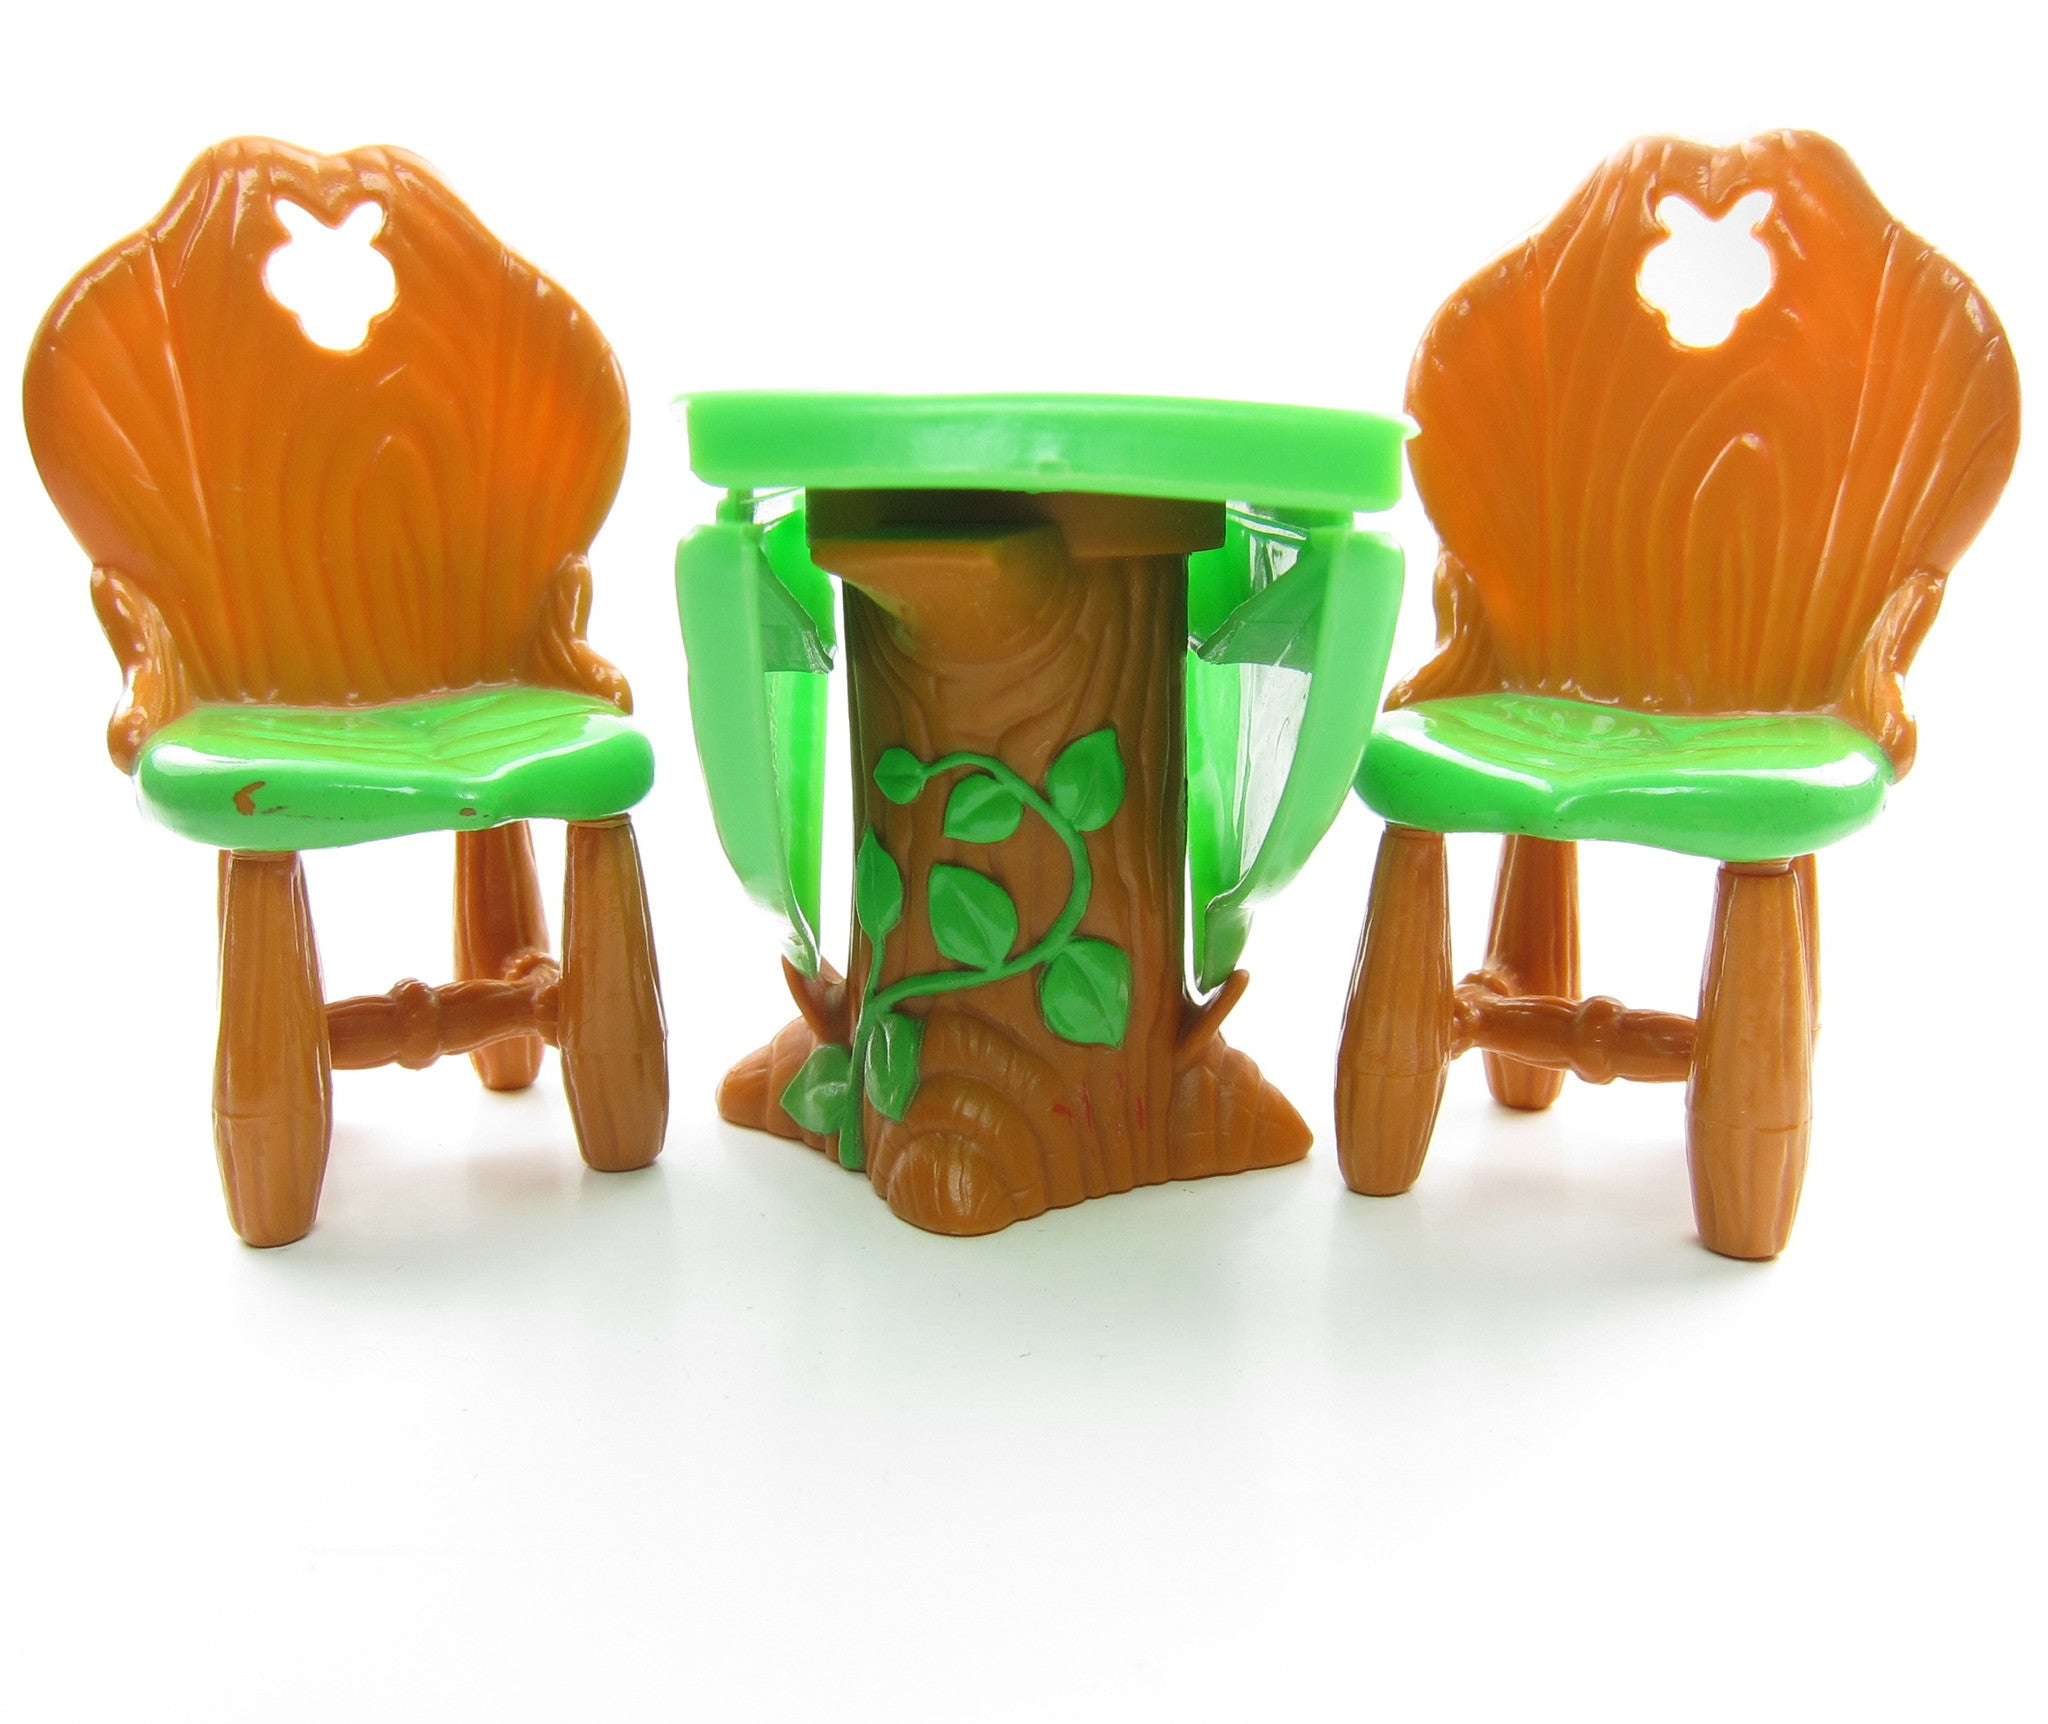 Dining Table & Chairs for Strawberry Shortcake Berry Happy Home ...